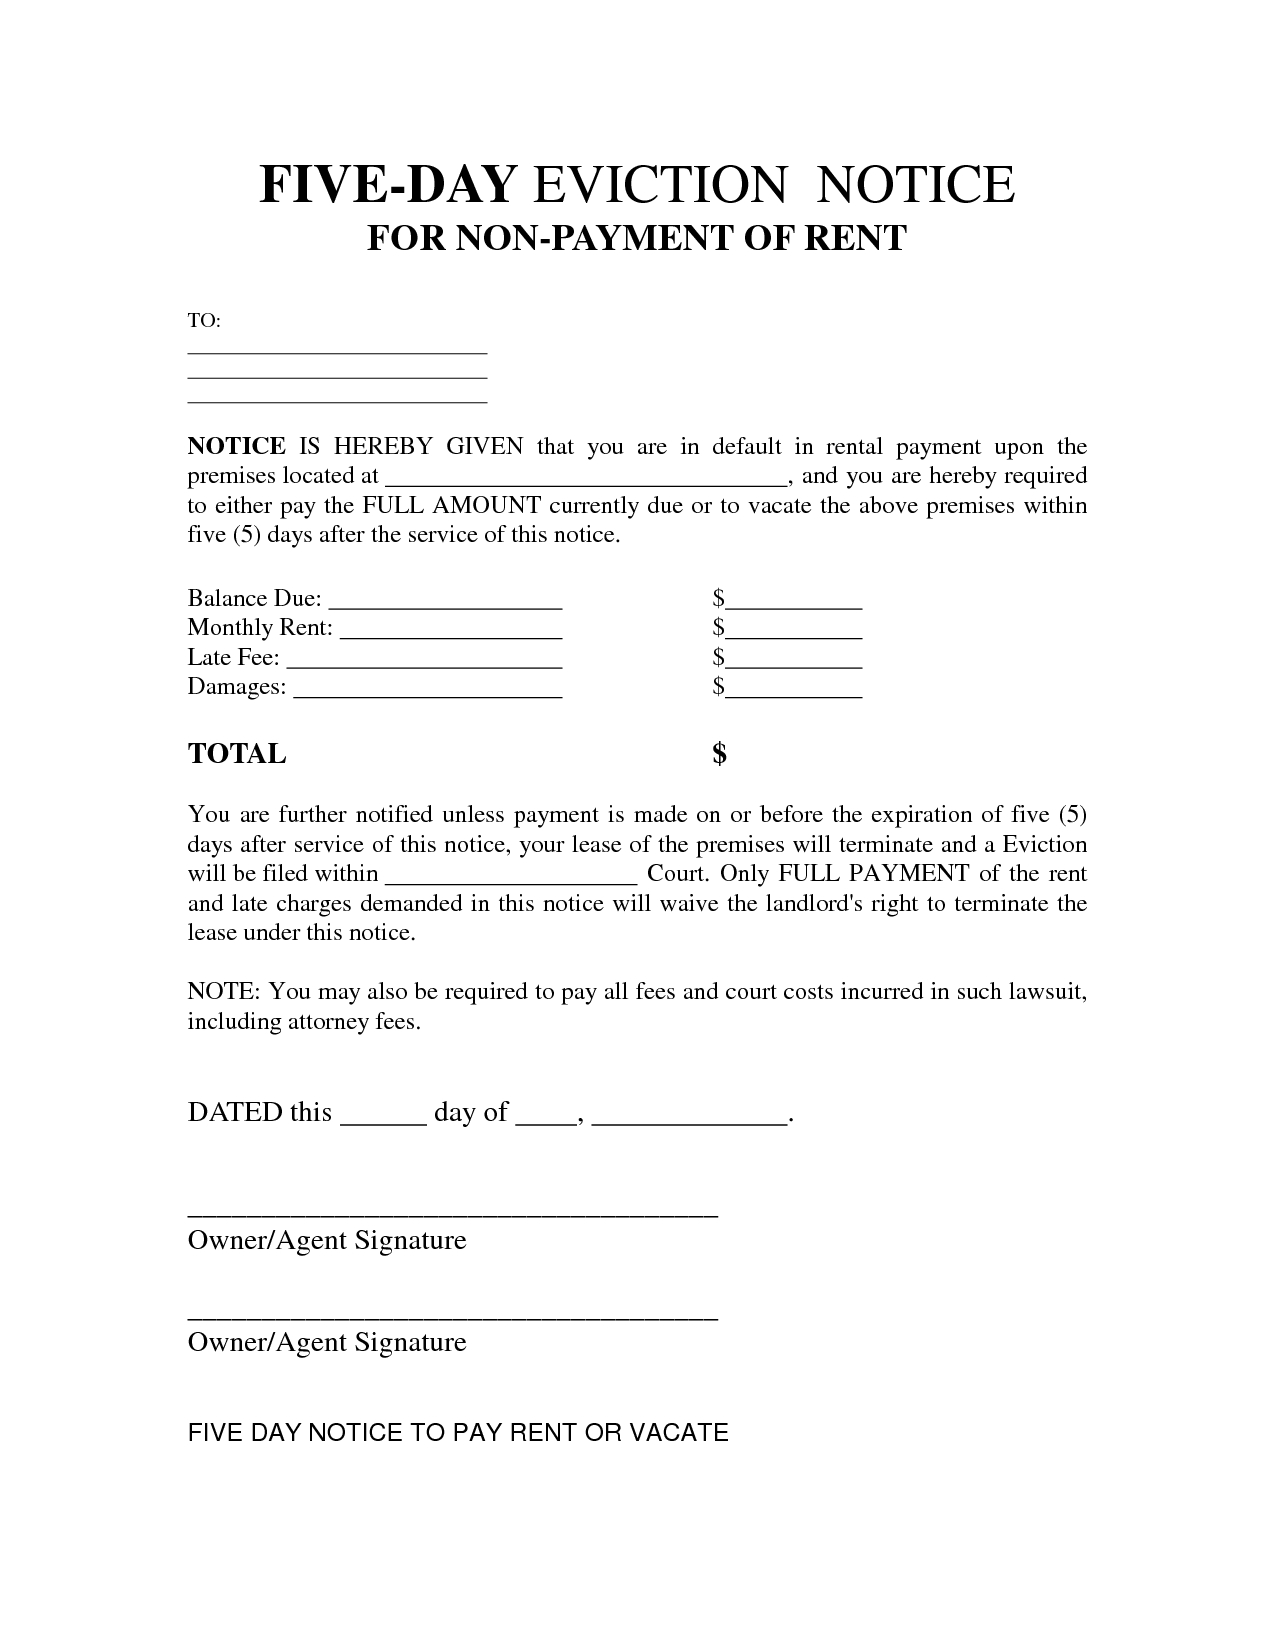 Free Printable Eviction Notice Letter   Bagnas - 5 Day Eviction - Free Printable 3 Day Eviction Notice